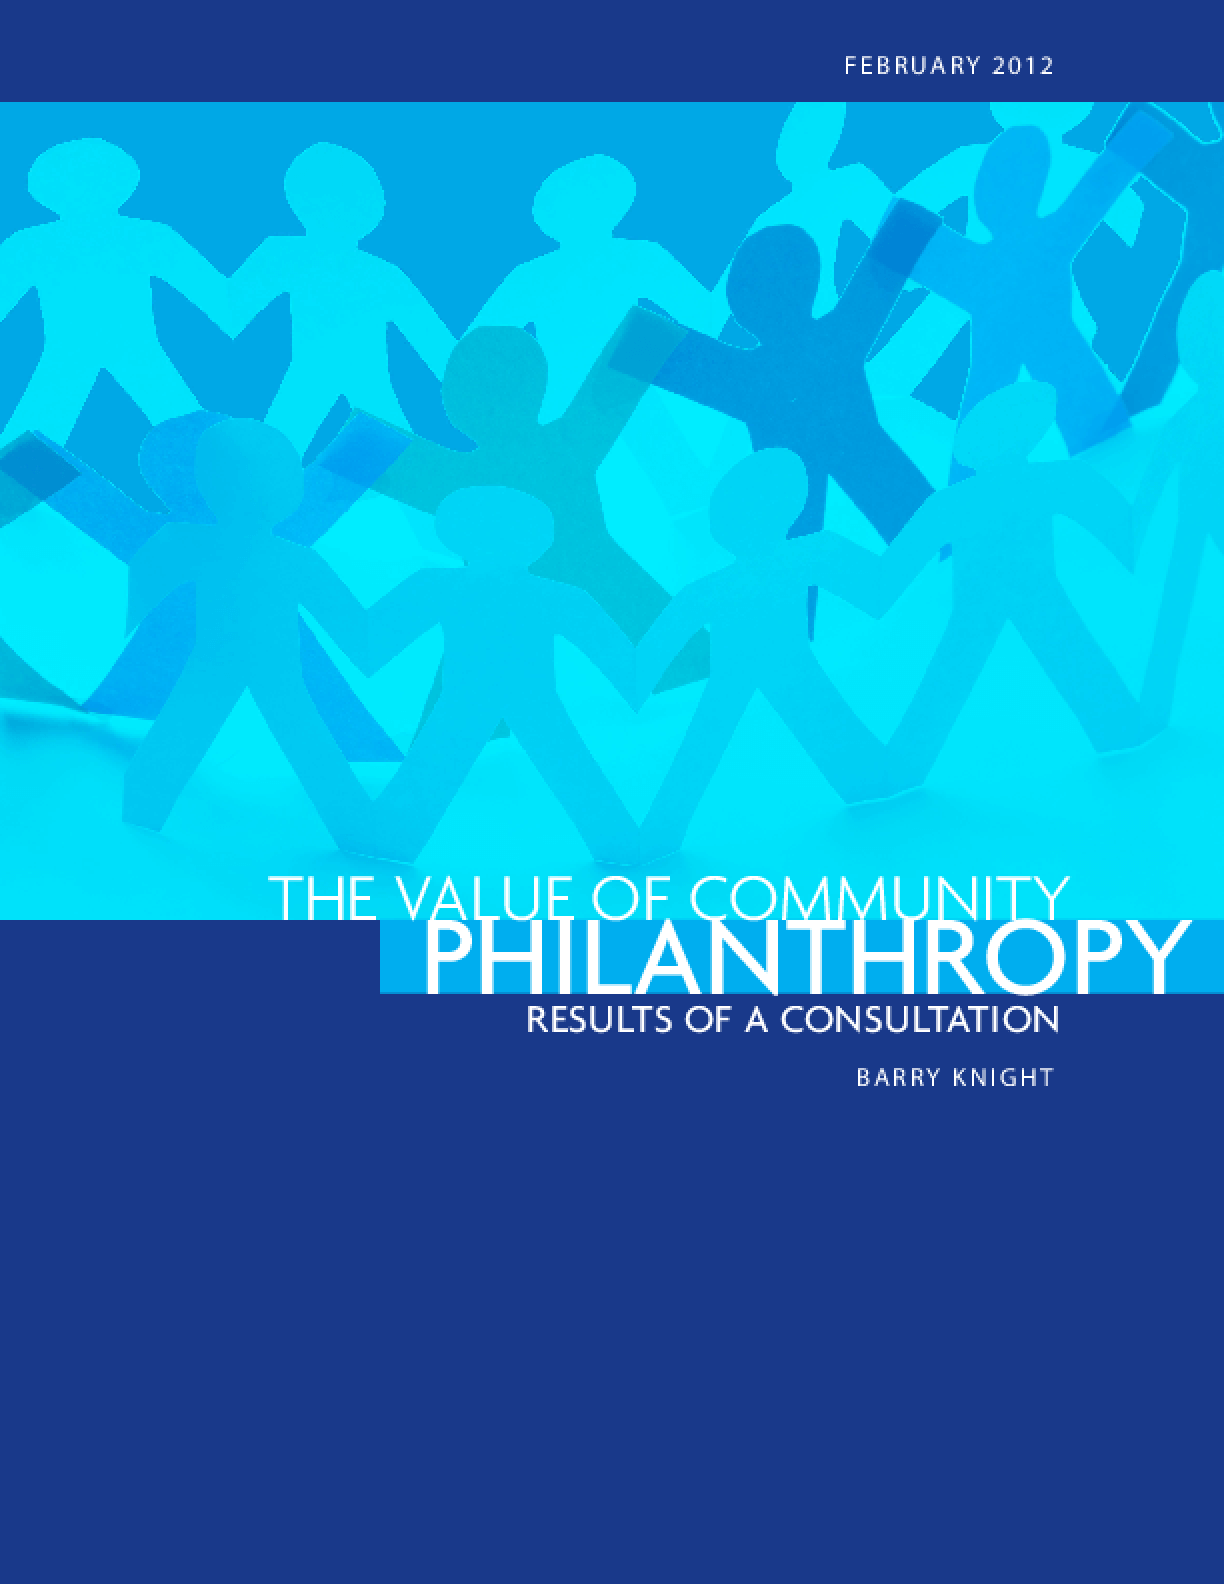 The Value of Community Philanthropy: Results from a Consultation